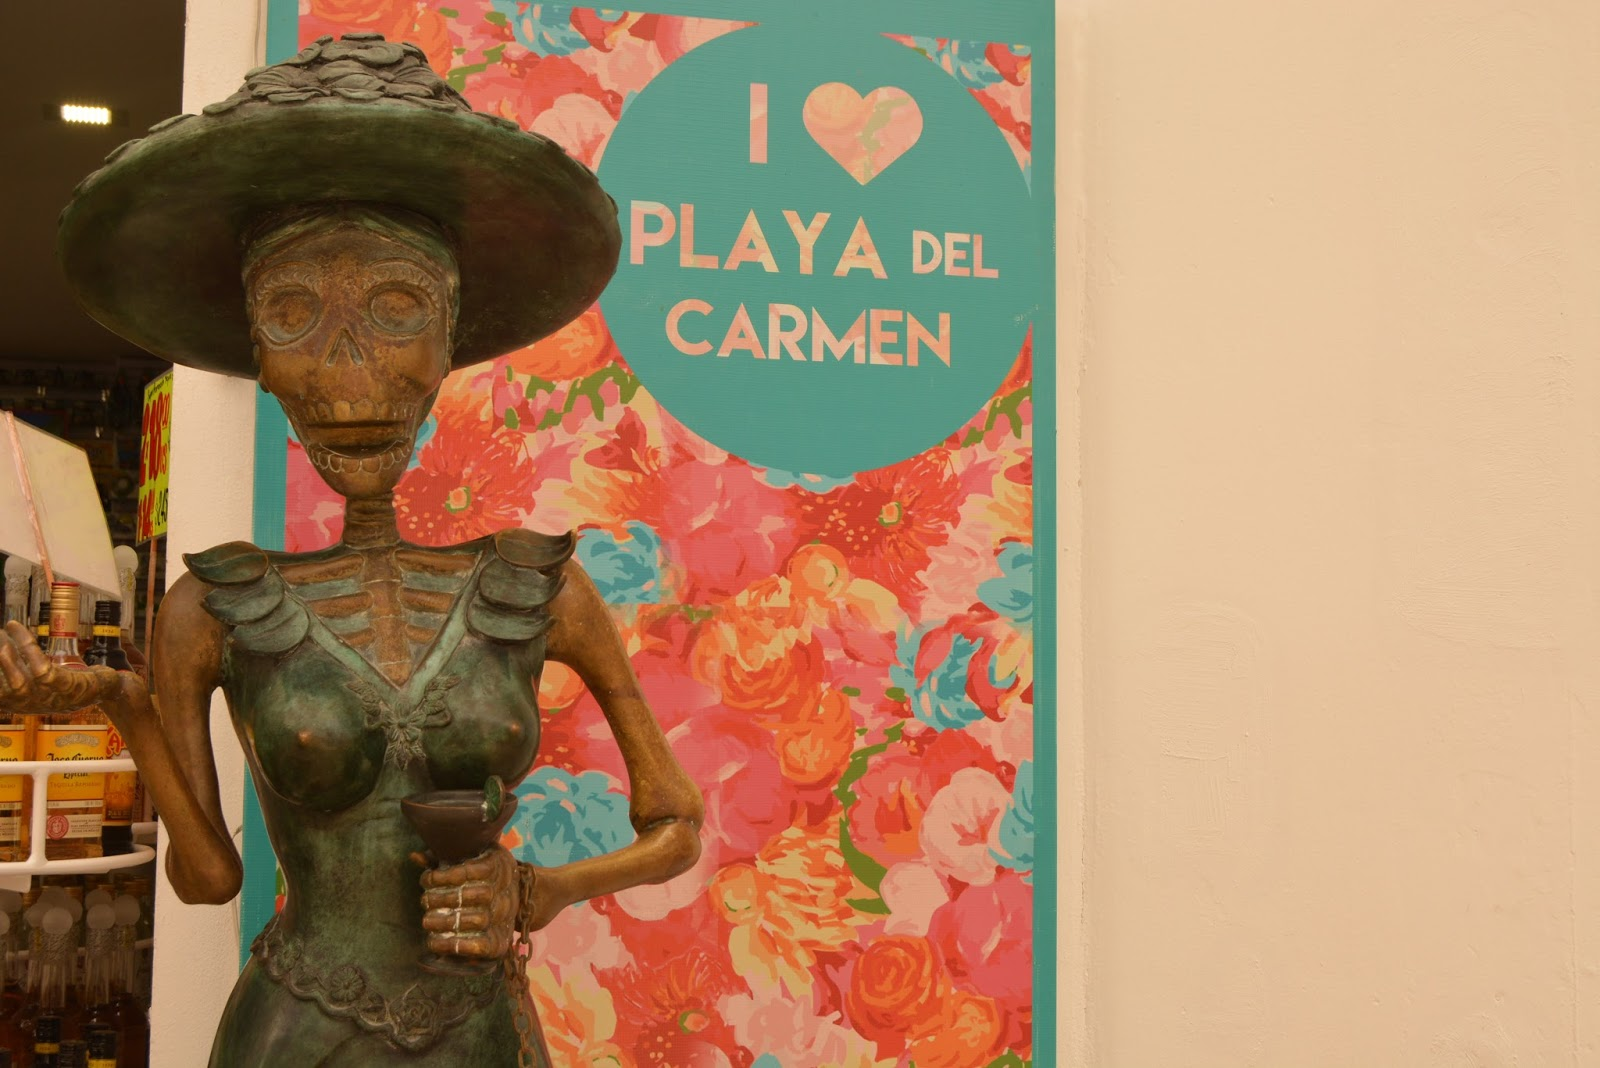 playa del carmen, playacar, riu tequila, holiday, mexico, traveling, travel, 5th ave, shopping, day of the dead